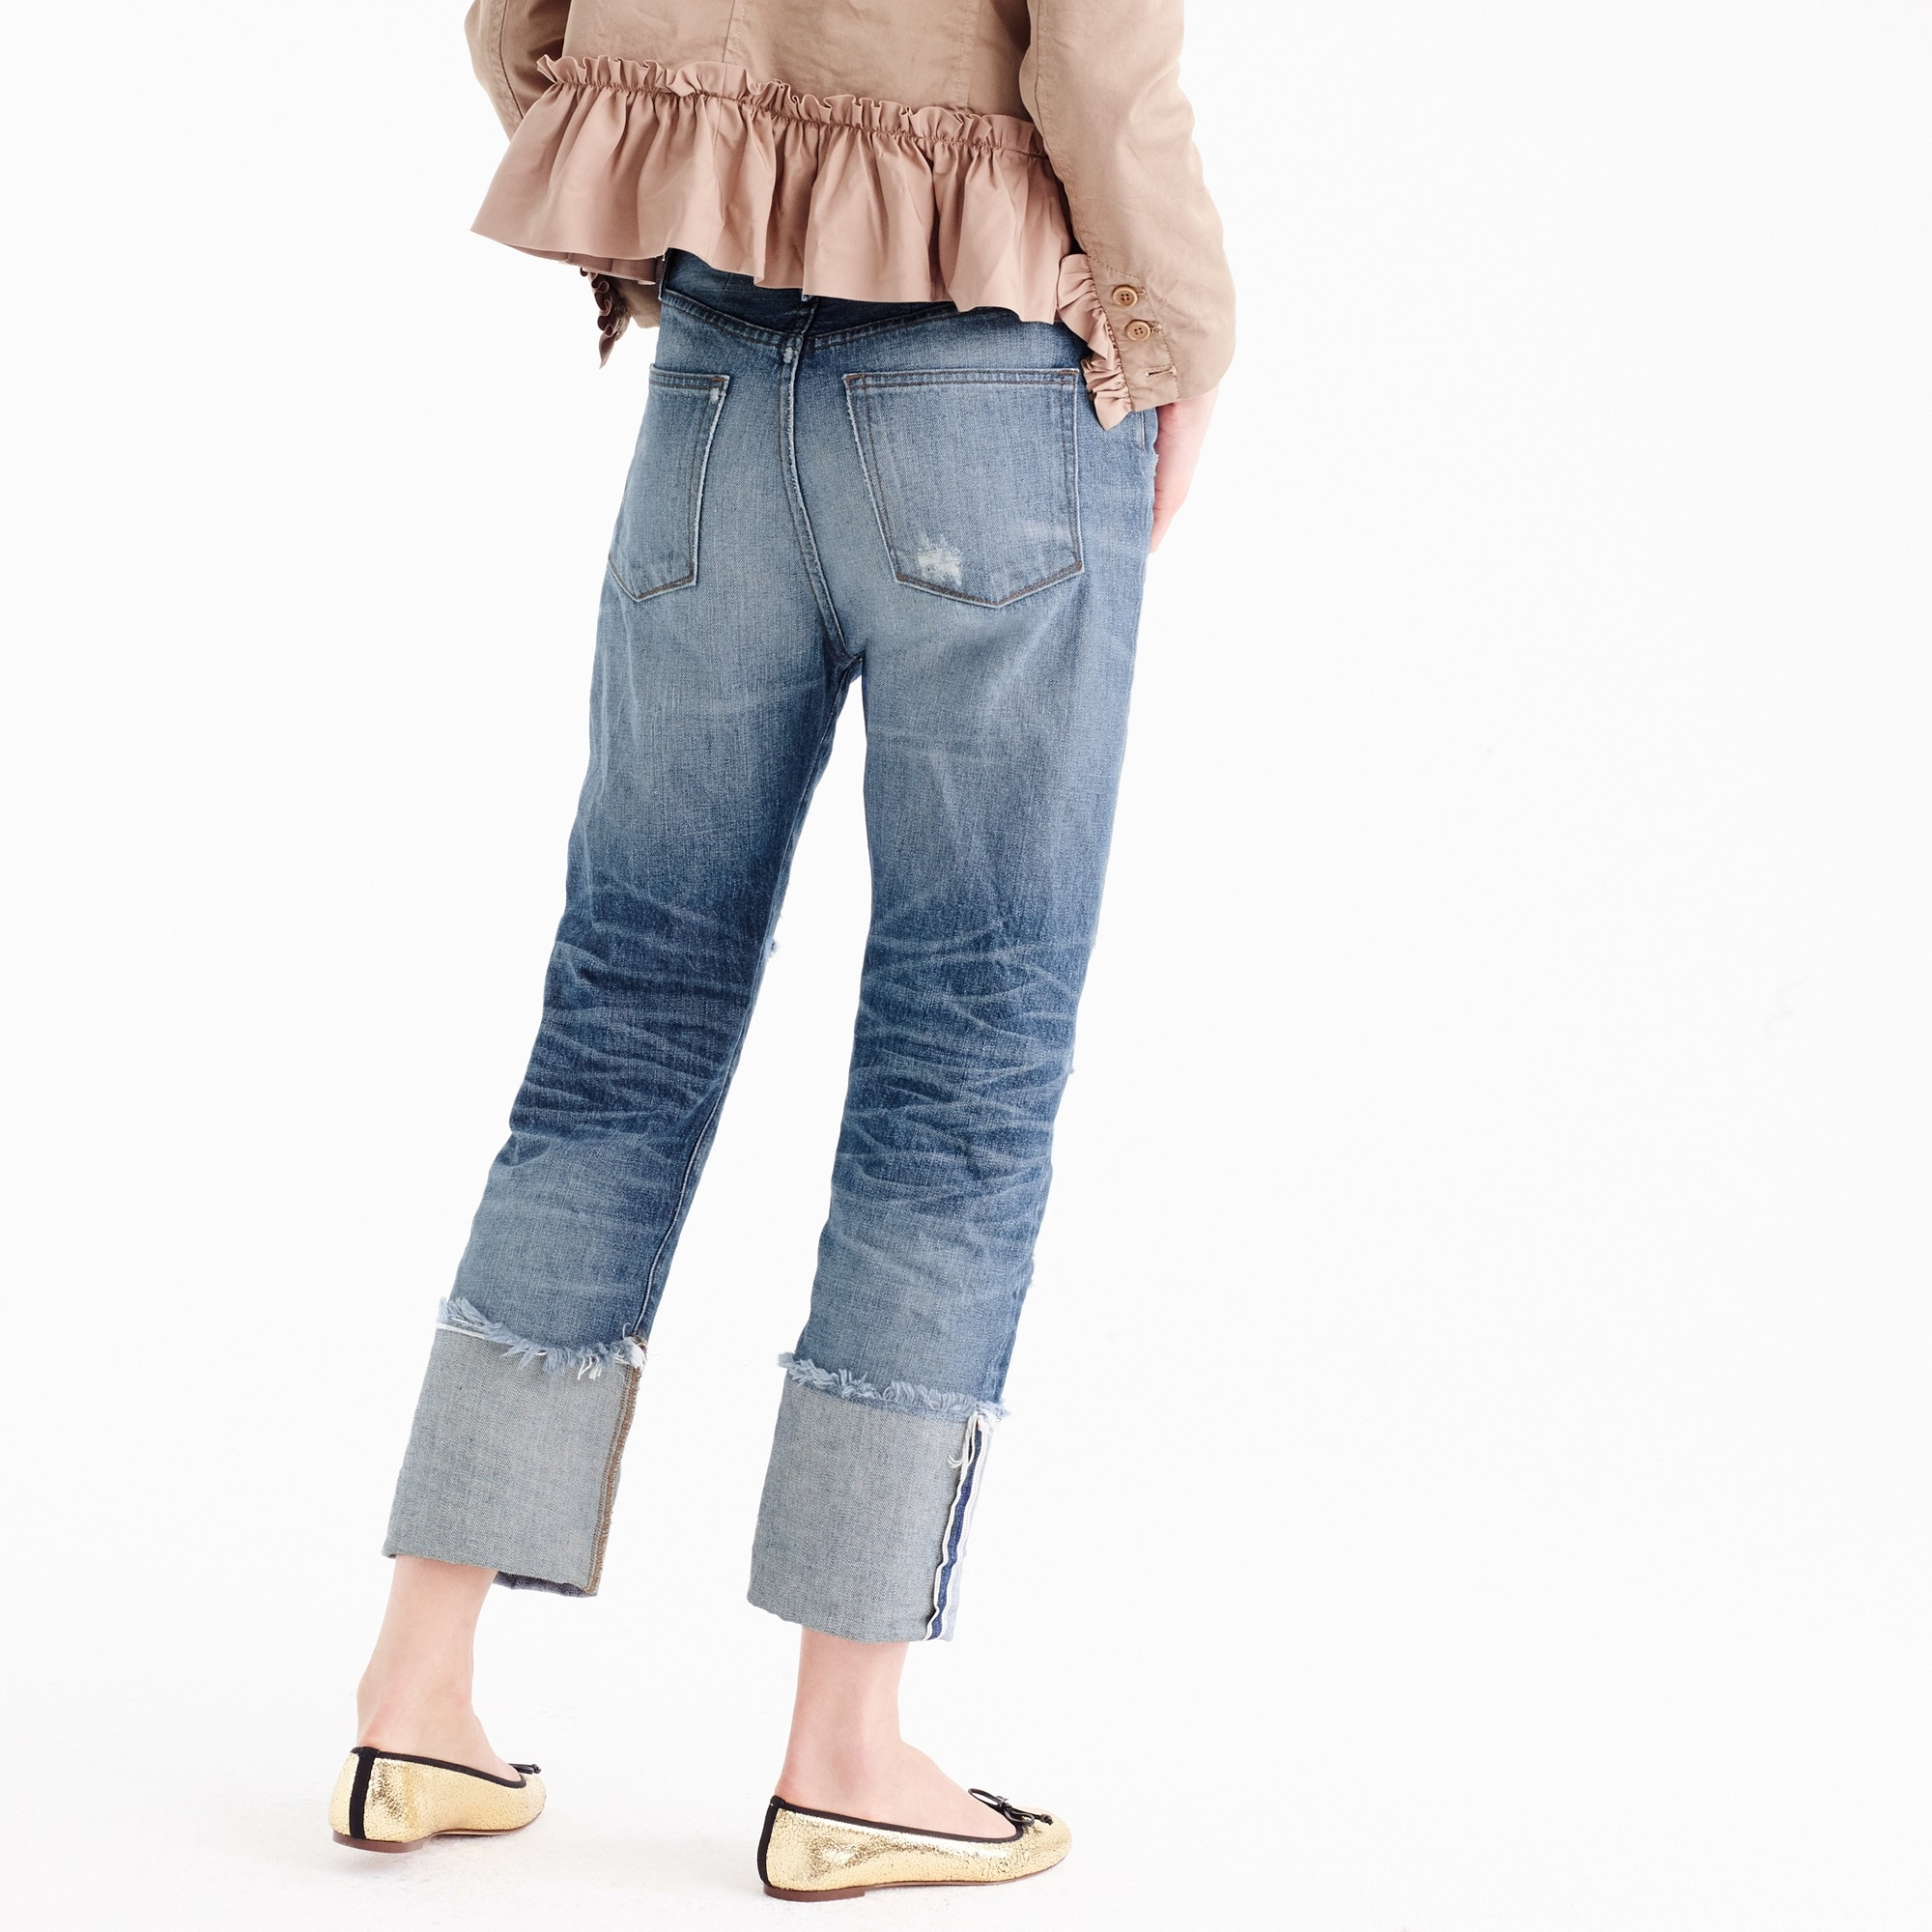 Image 4 for Point Sur distressed selvedge jean with long cuff